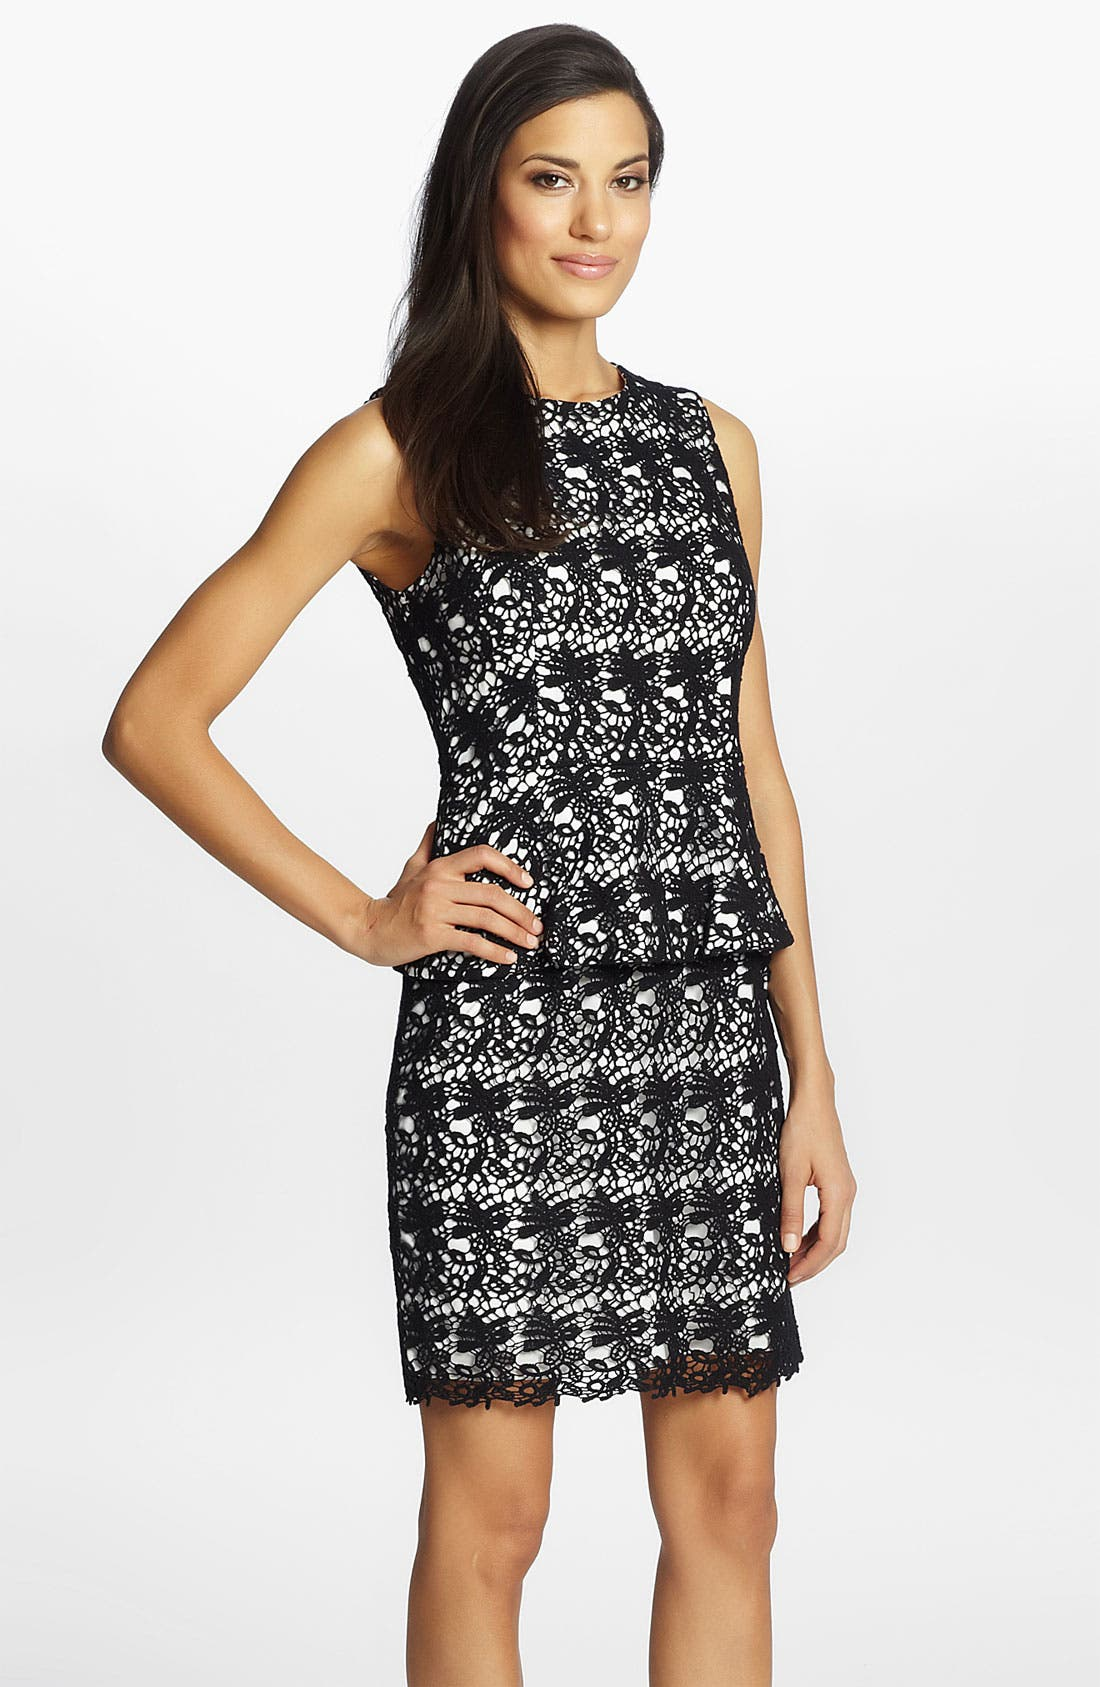 Alternate Image 1 Selected - Cynthia Steffe 'Camille' Lace Peplum Dress